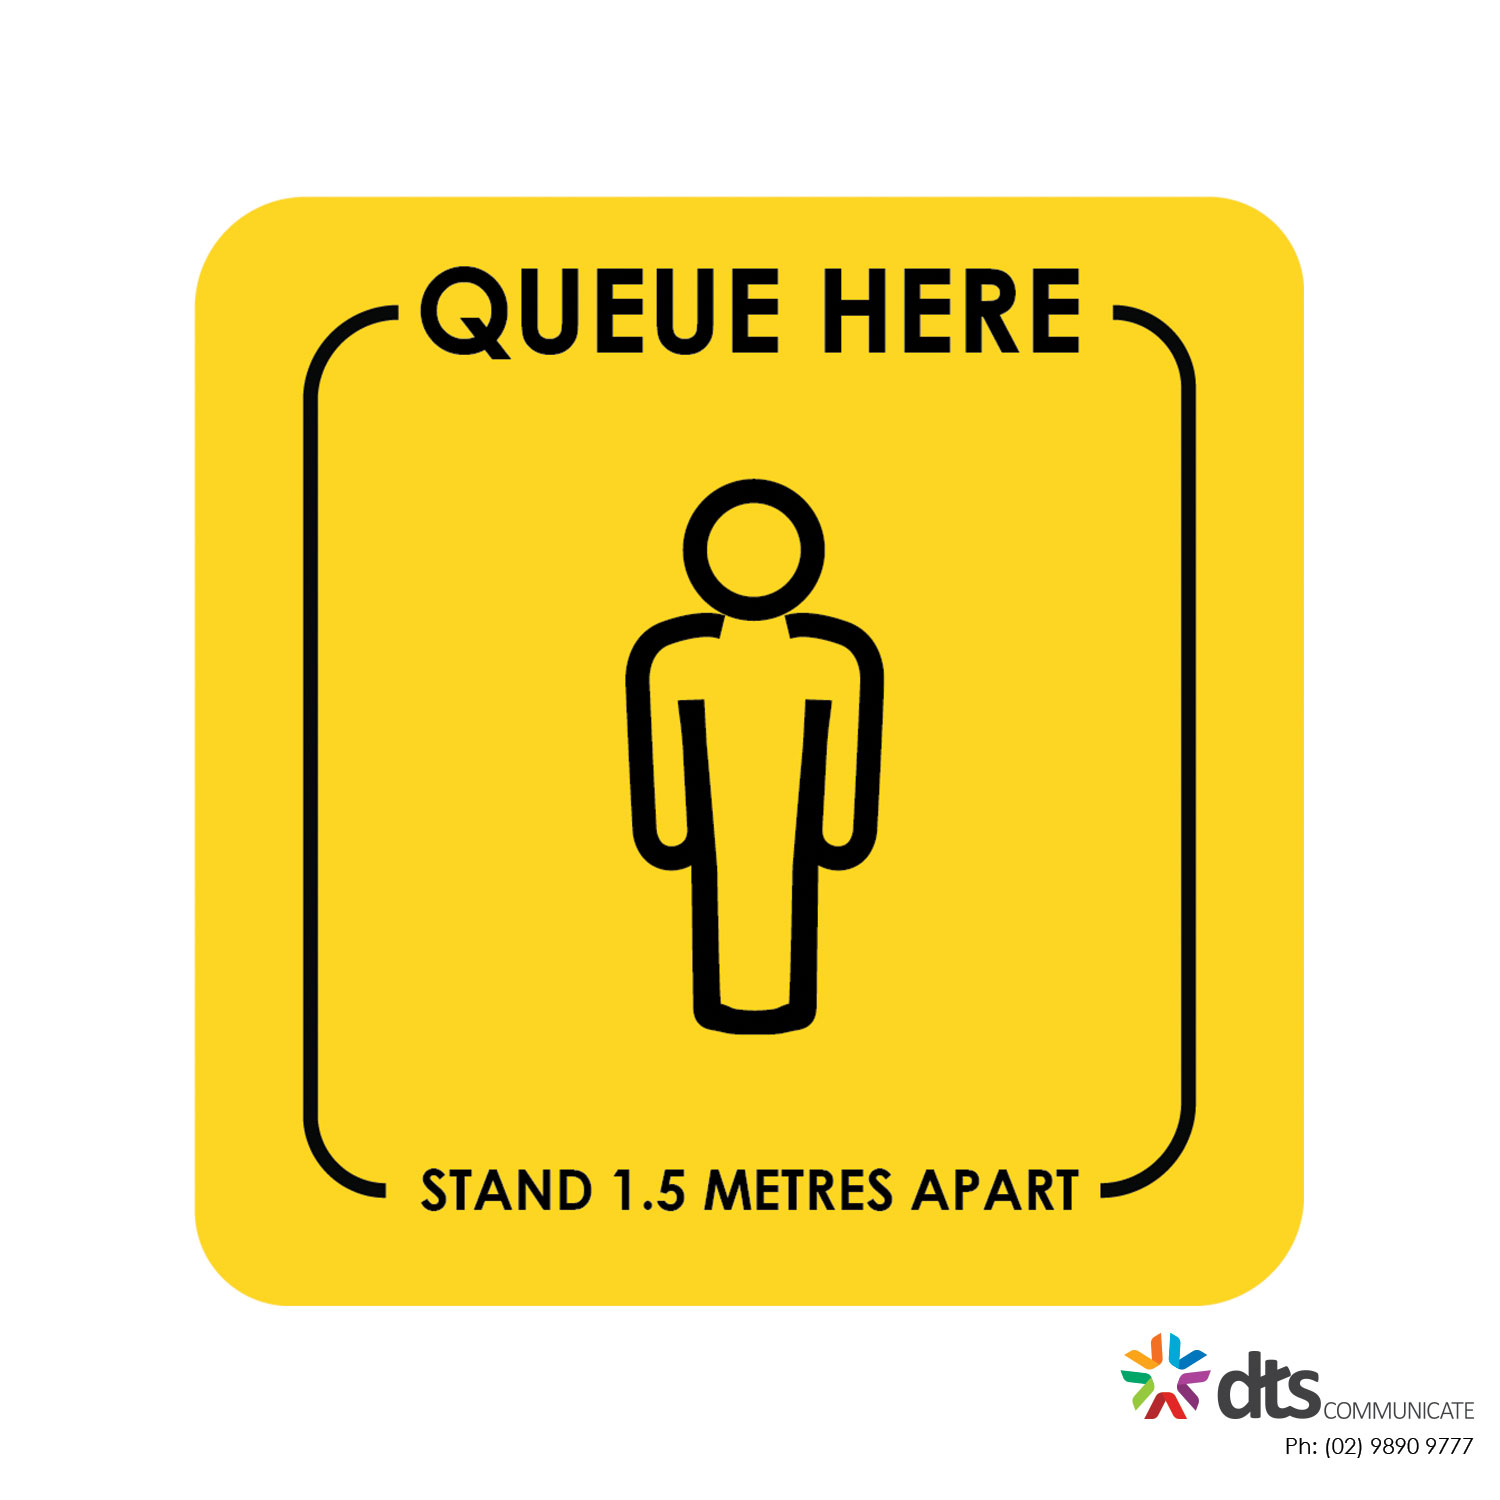 XLART DTS Covid19 Covid Floor Stickers Decals Social Distancing Sydney Melbourne Australia queue here person style 26